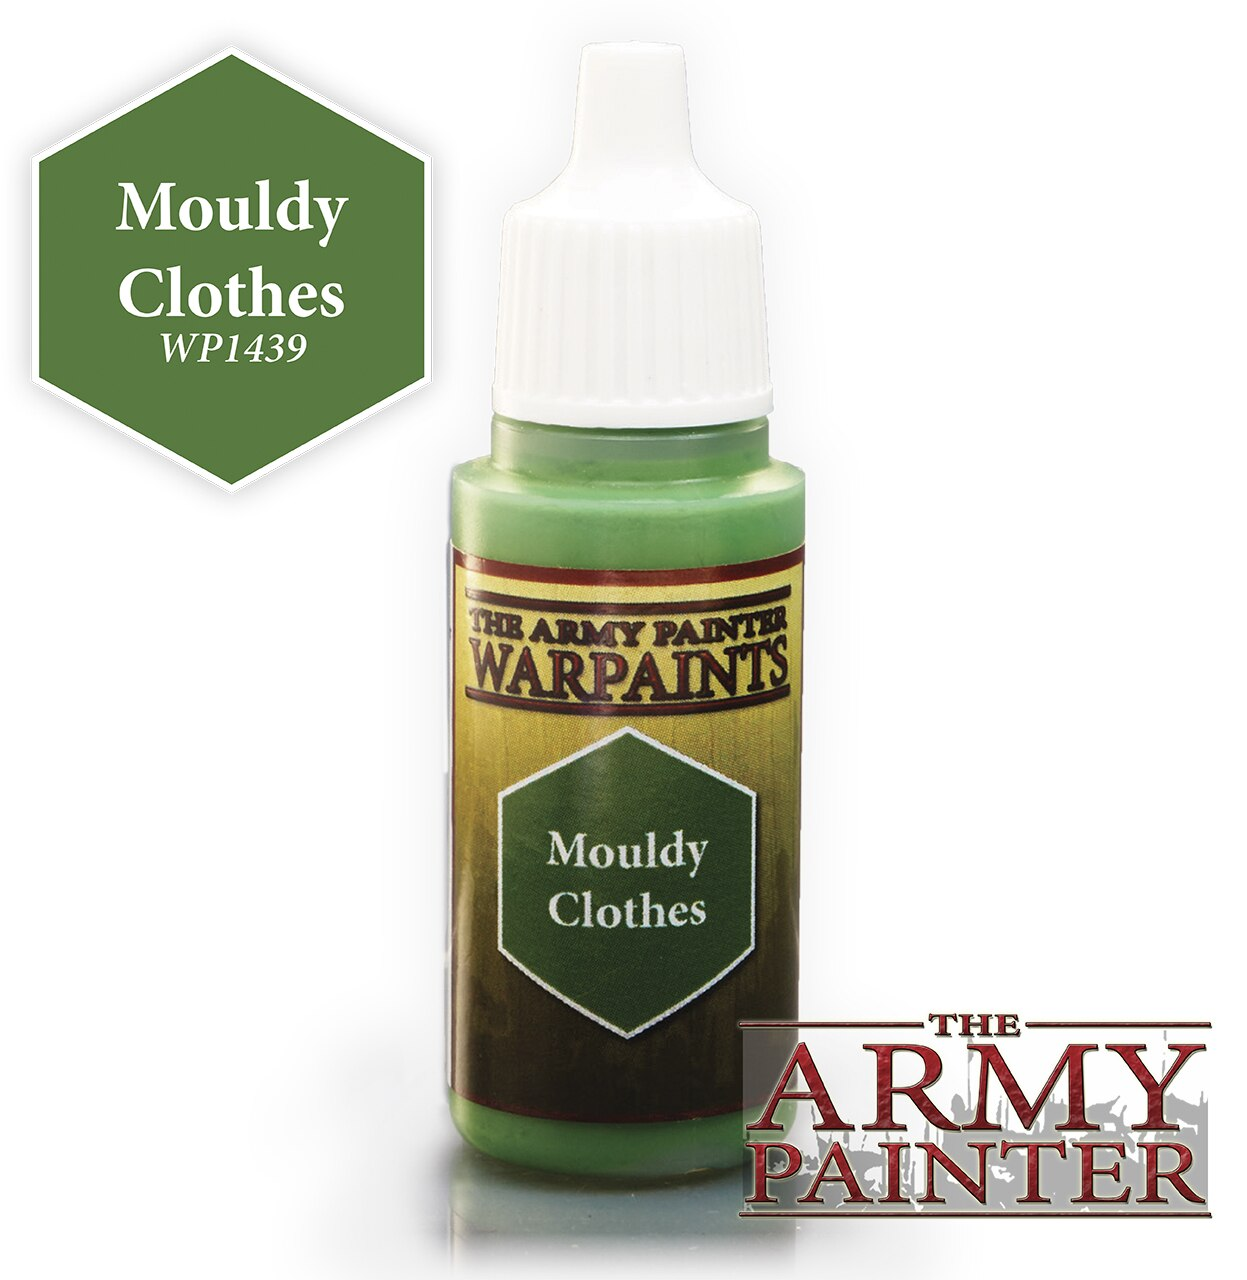 Army Painter Warpaint - Mouldy Clothes